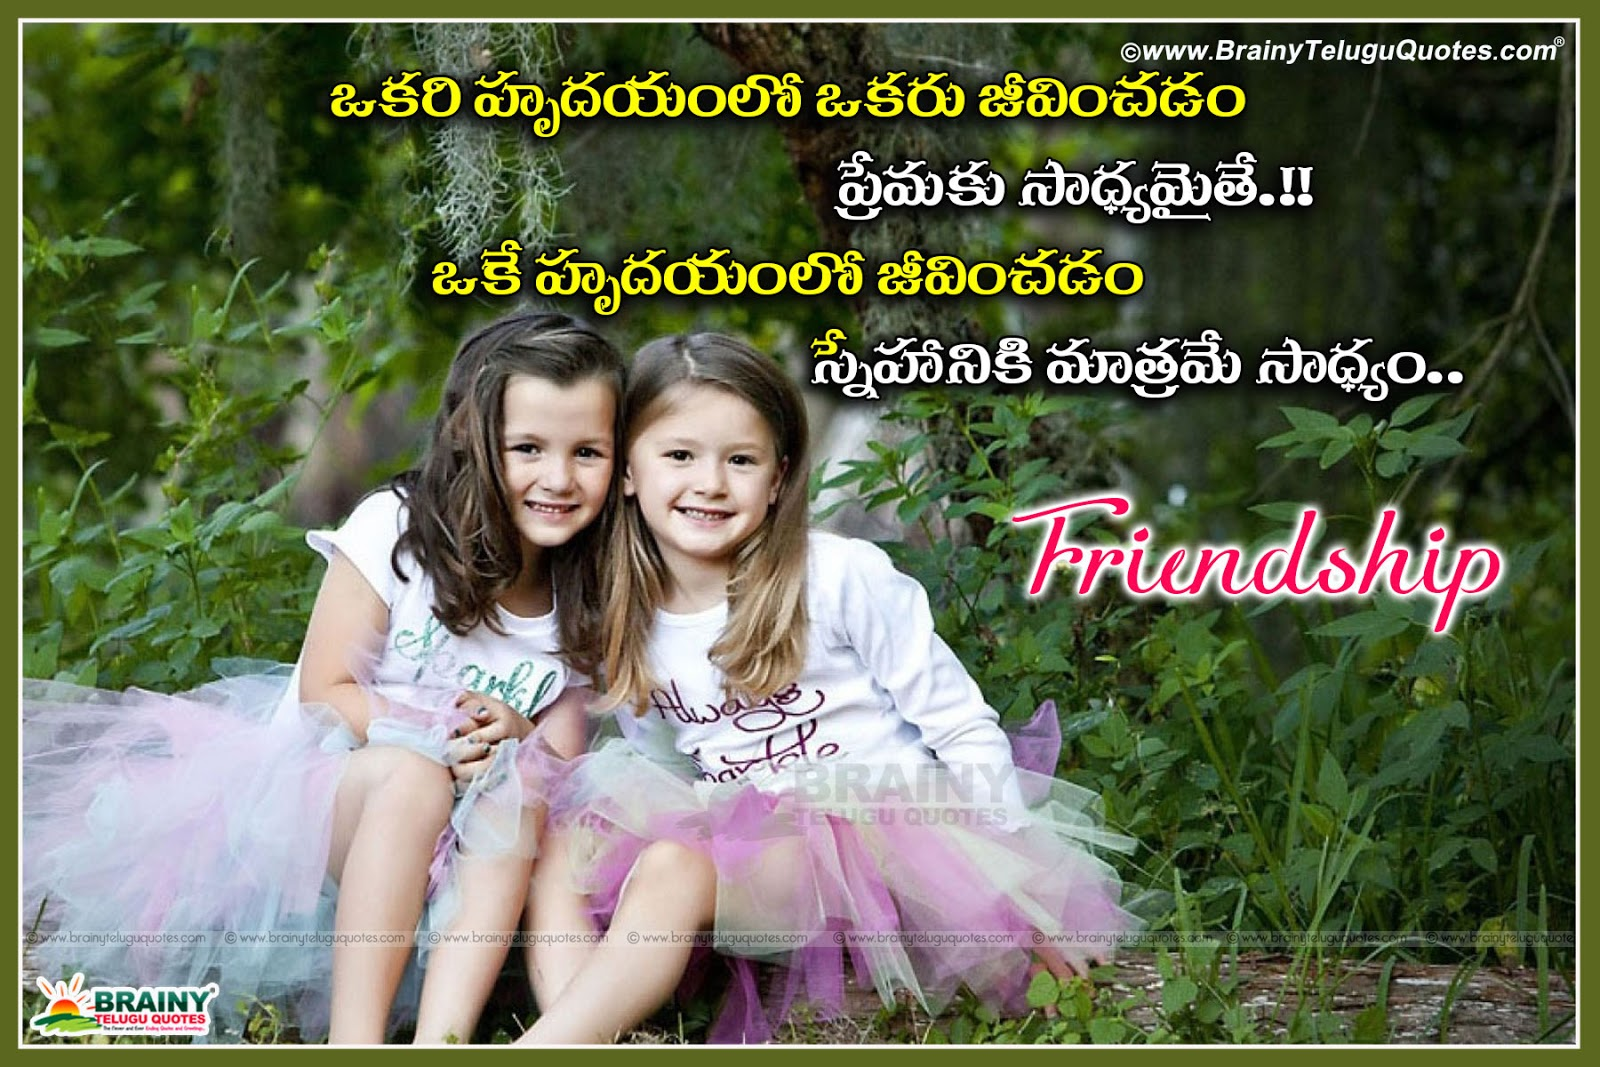 latest telugu quotes about friendship and love with cute